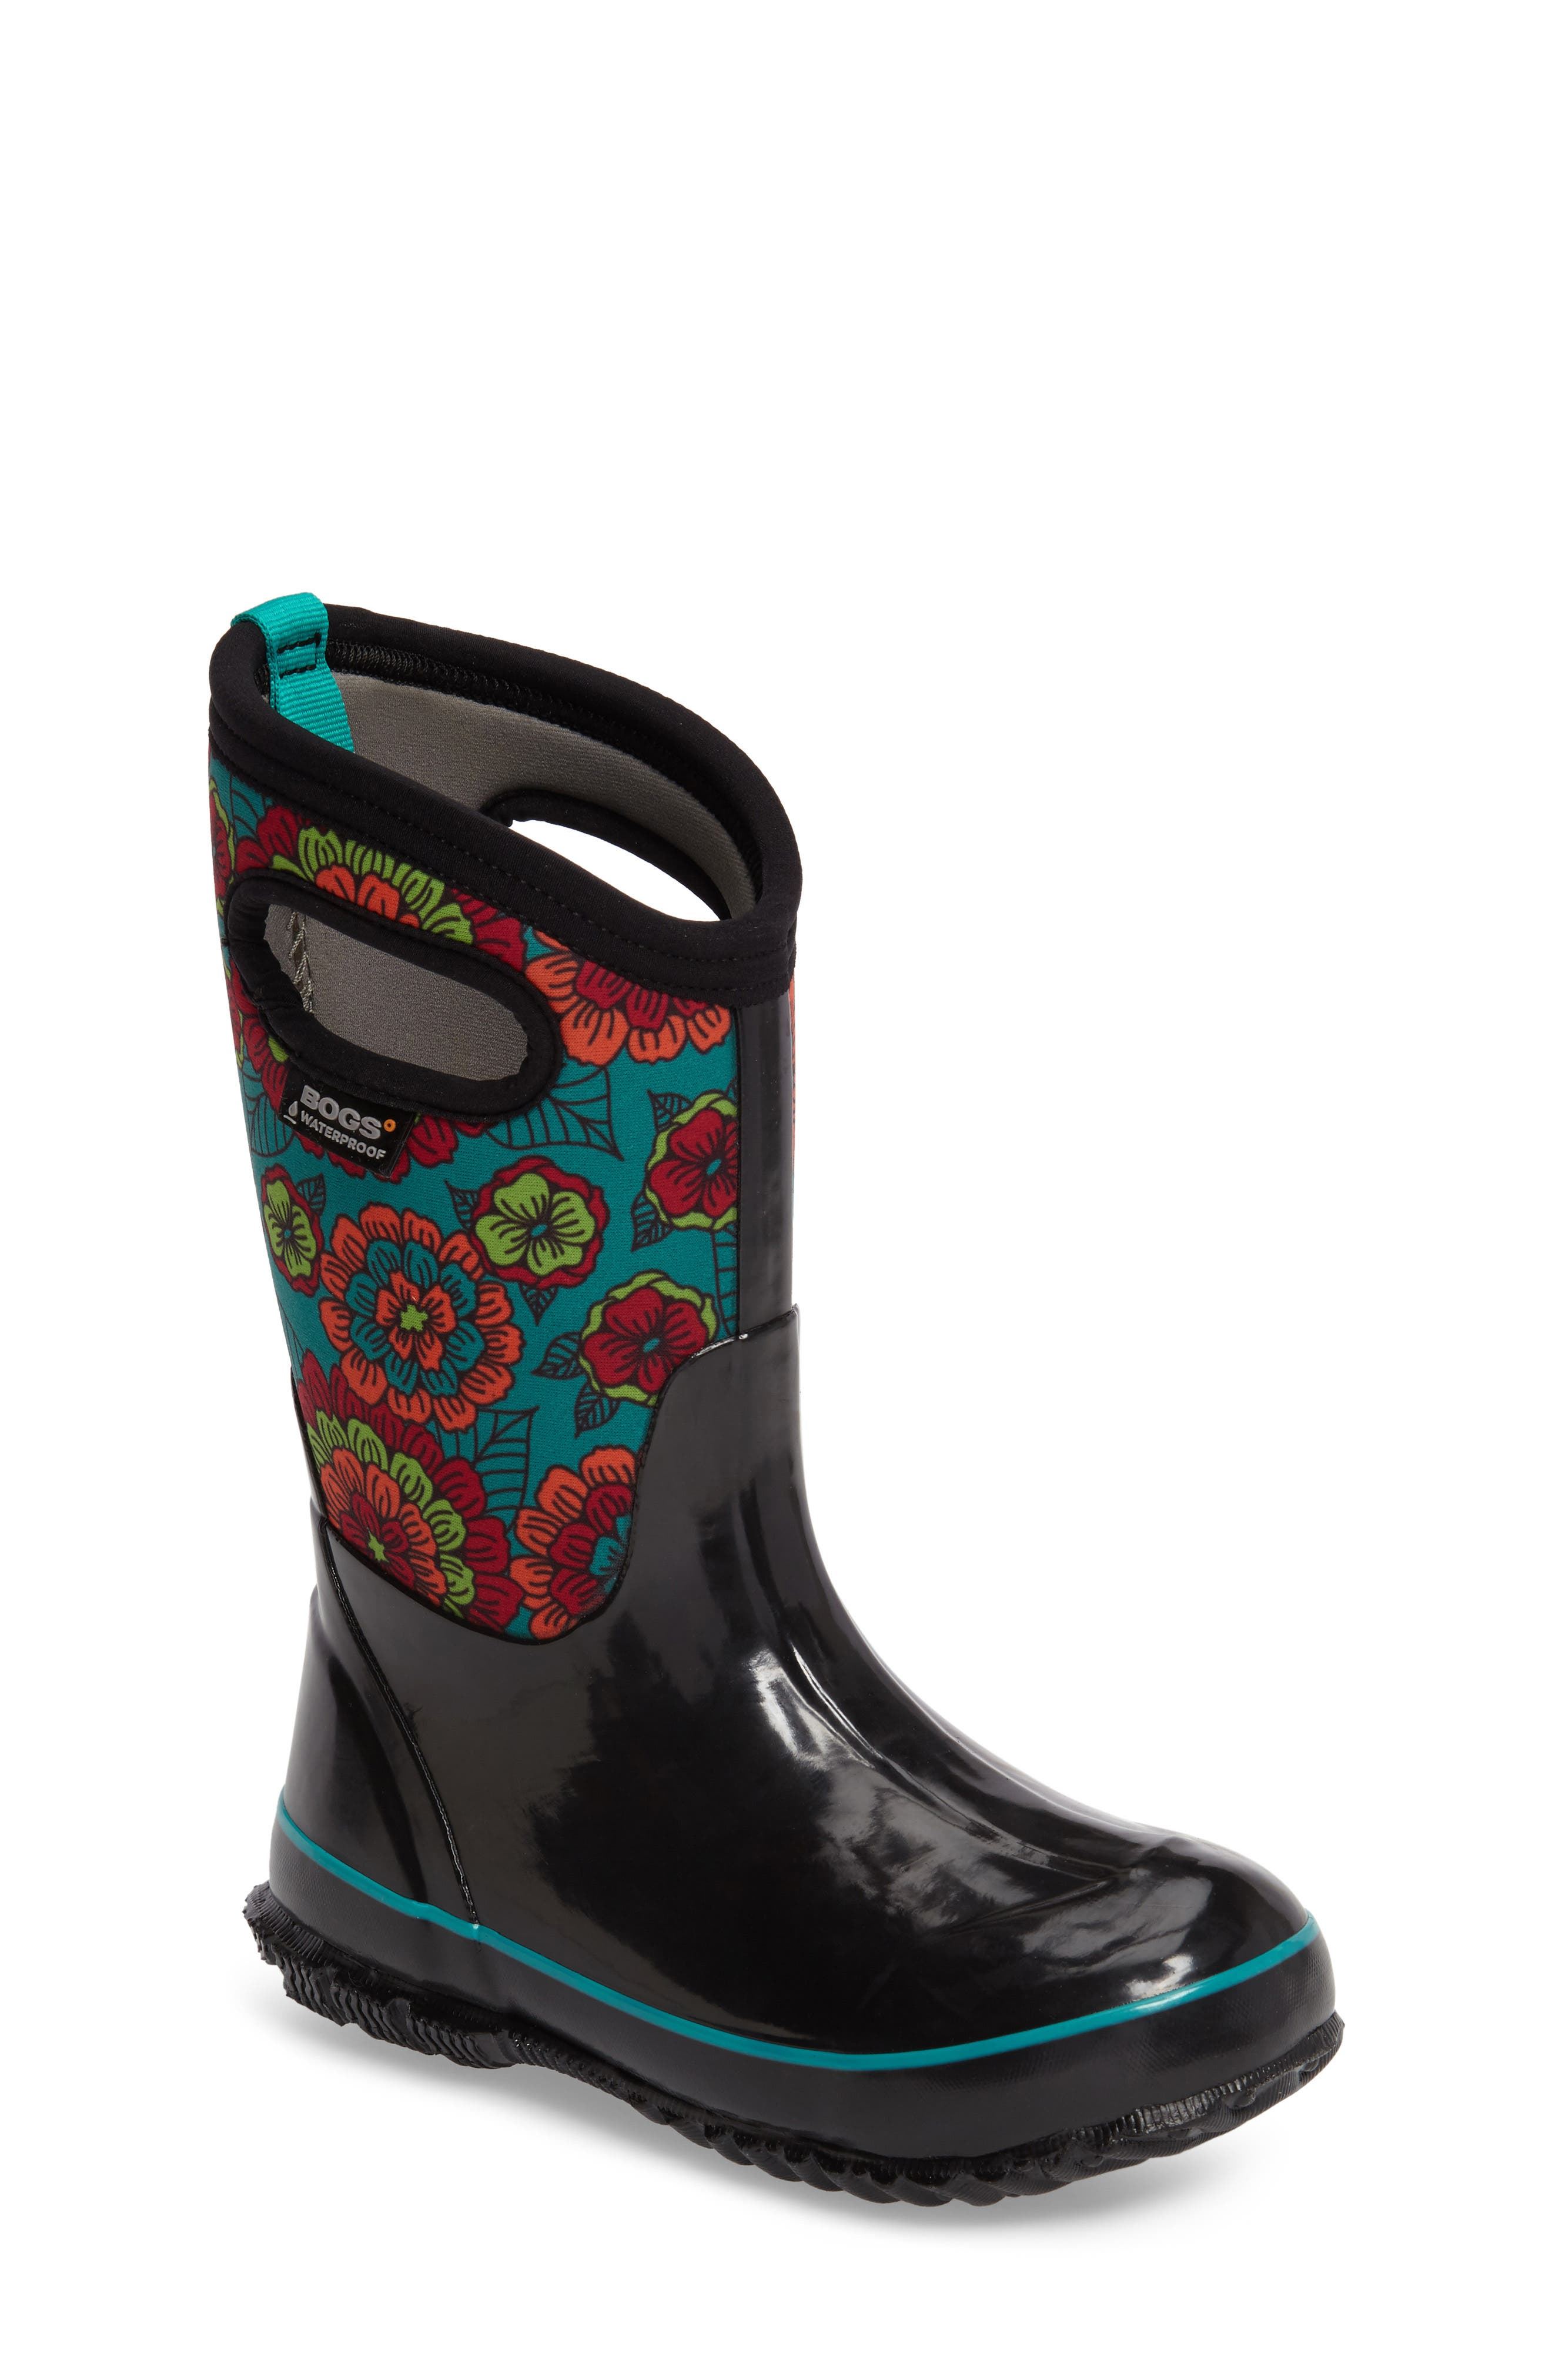 Bogs Classic Pansies Waterproof Rain Boot (Toddler, Little Kid & Big Kid)